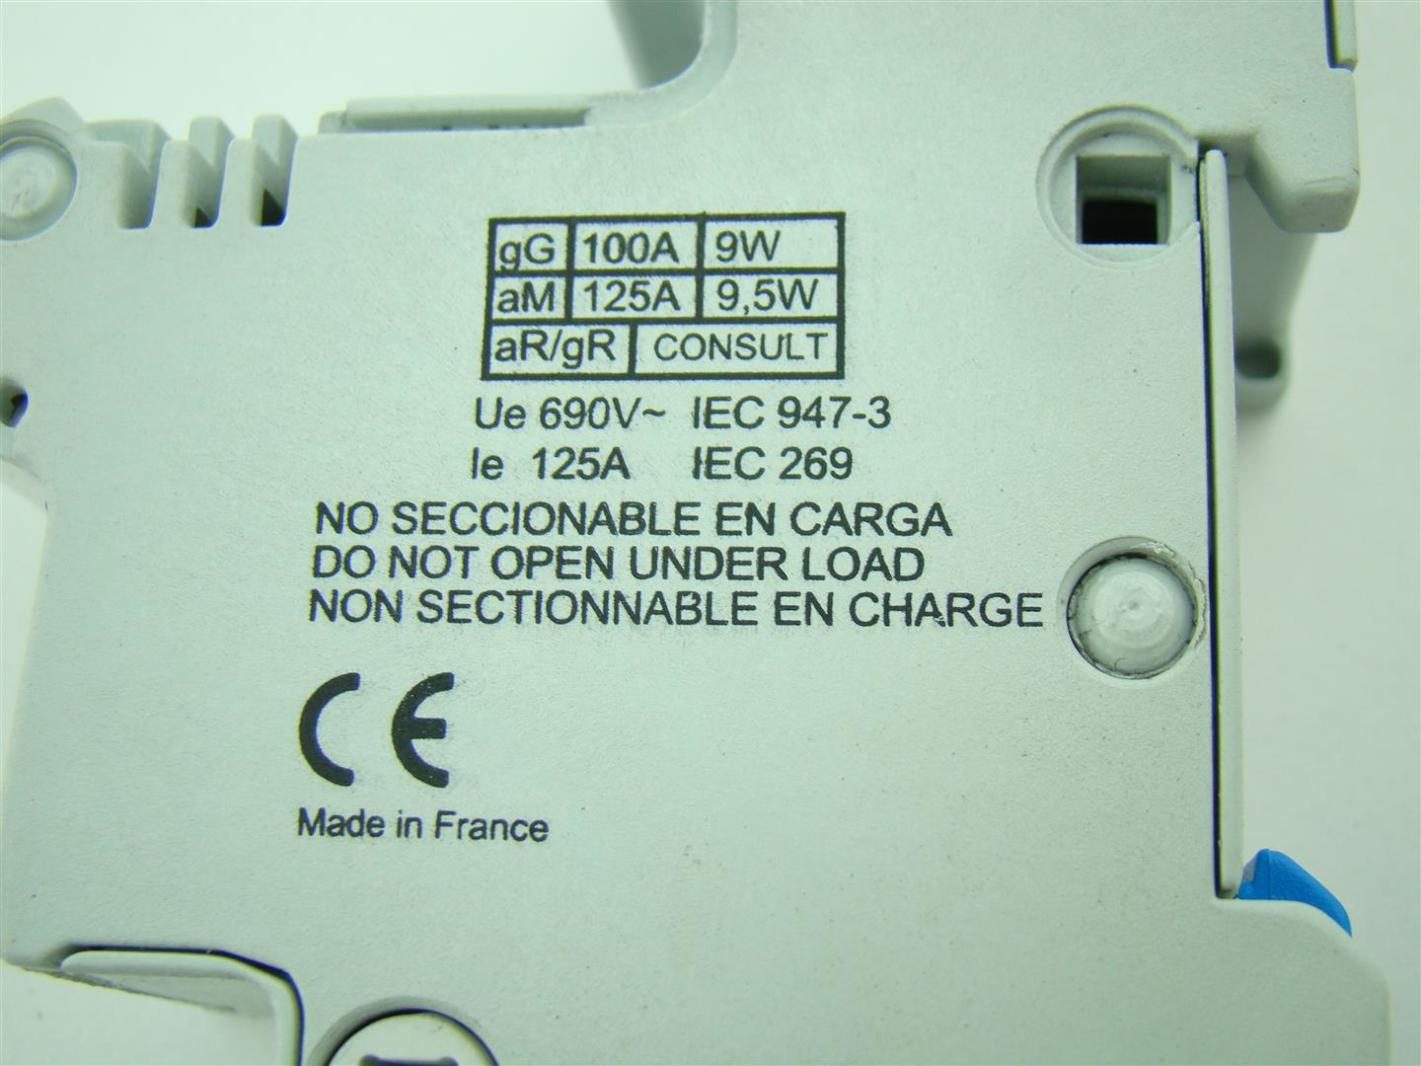 Fuse Box Cms Complete Wiring Diagrams Components Ferraz Shawmut 125a Holder Din Rail Mount 22x58 22 H214137 Rh Ebay Com Cost Customer Support Number